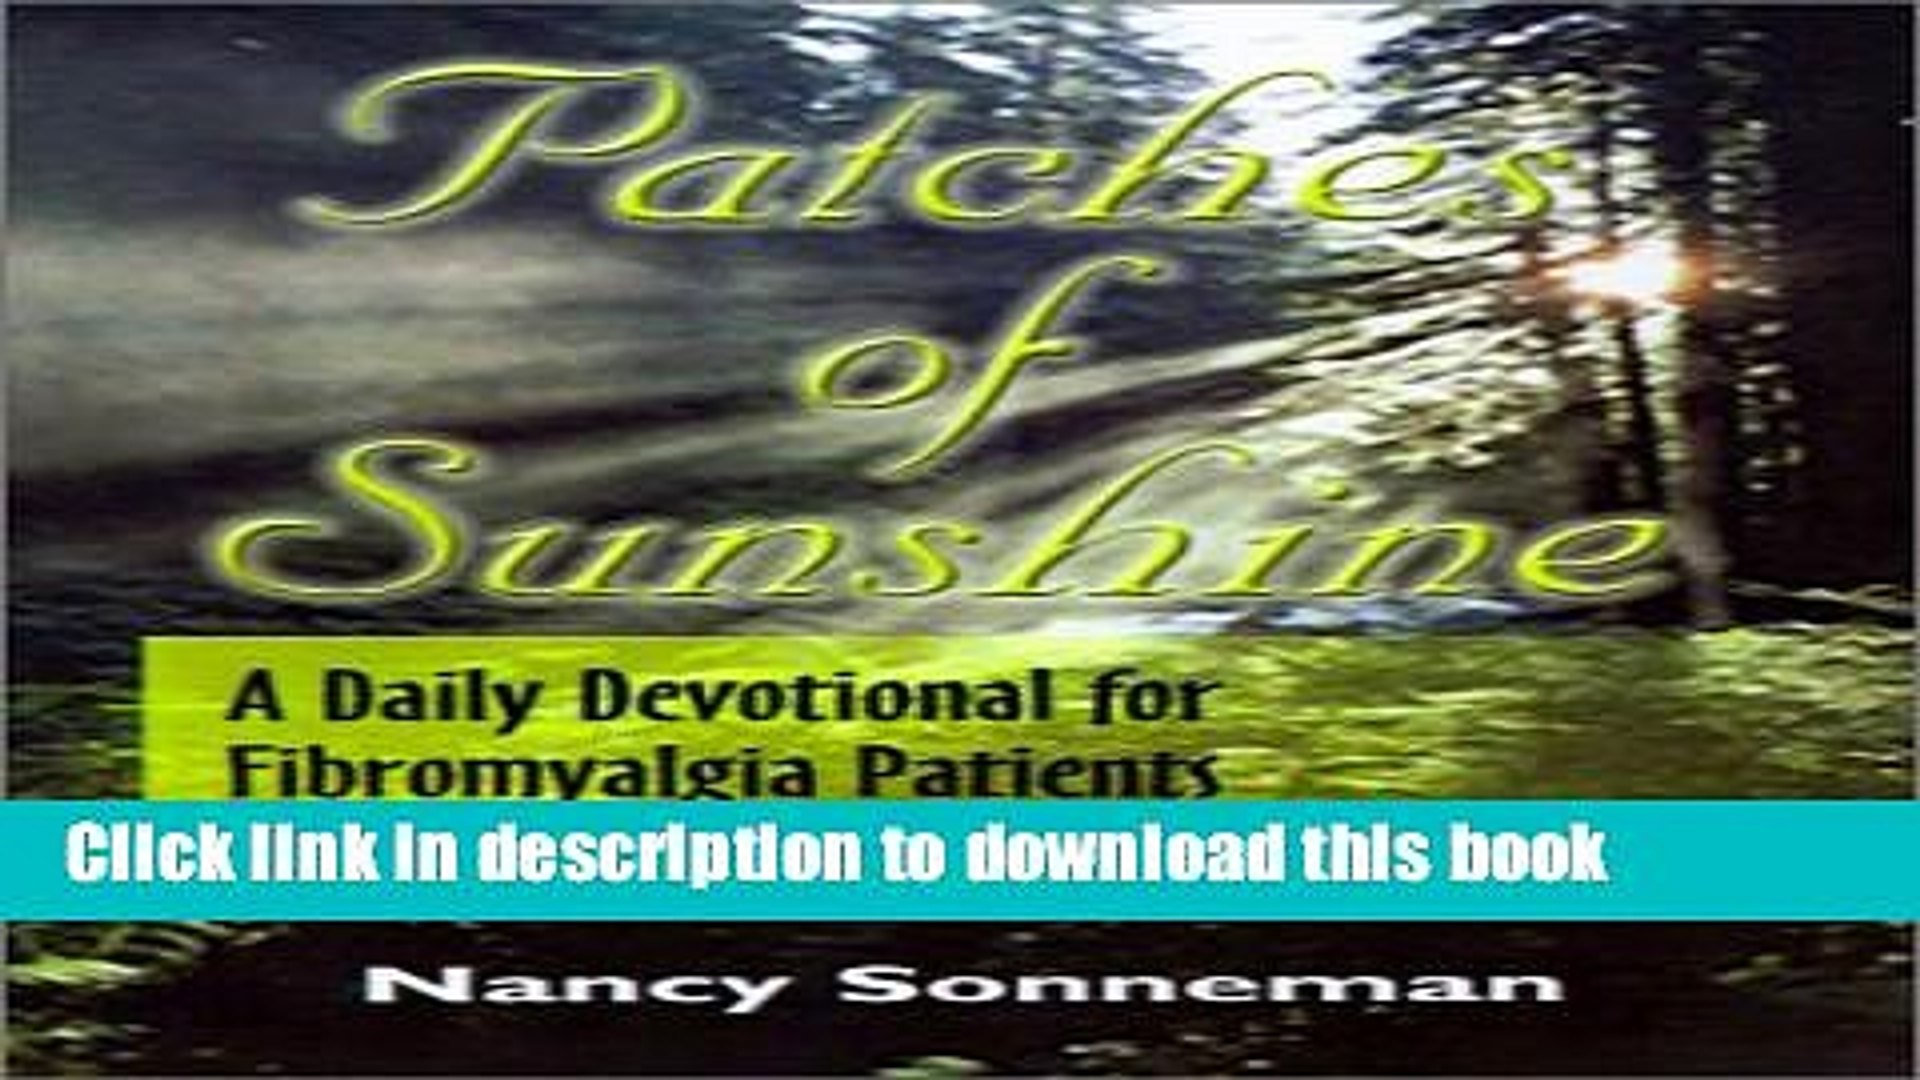 [Popular] Patches of Sunshine: A Daily Devotional for Fibromyalgia Patients Hardcover